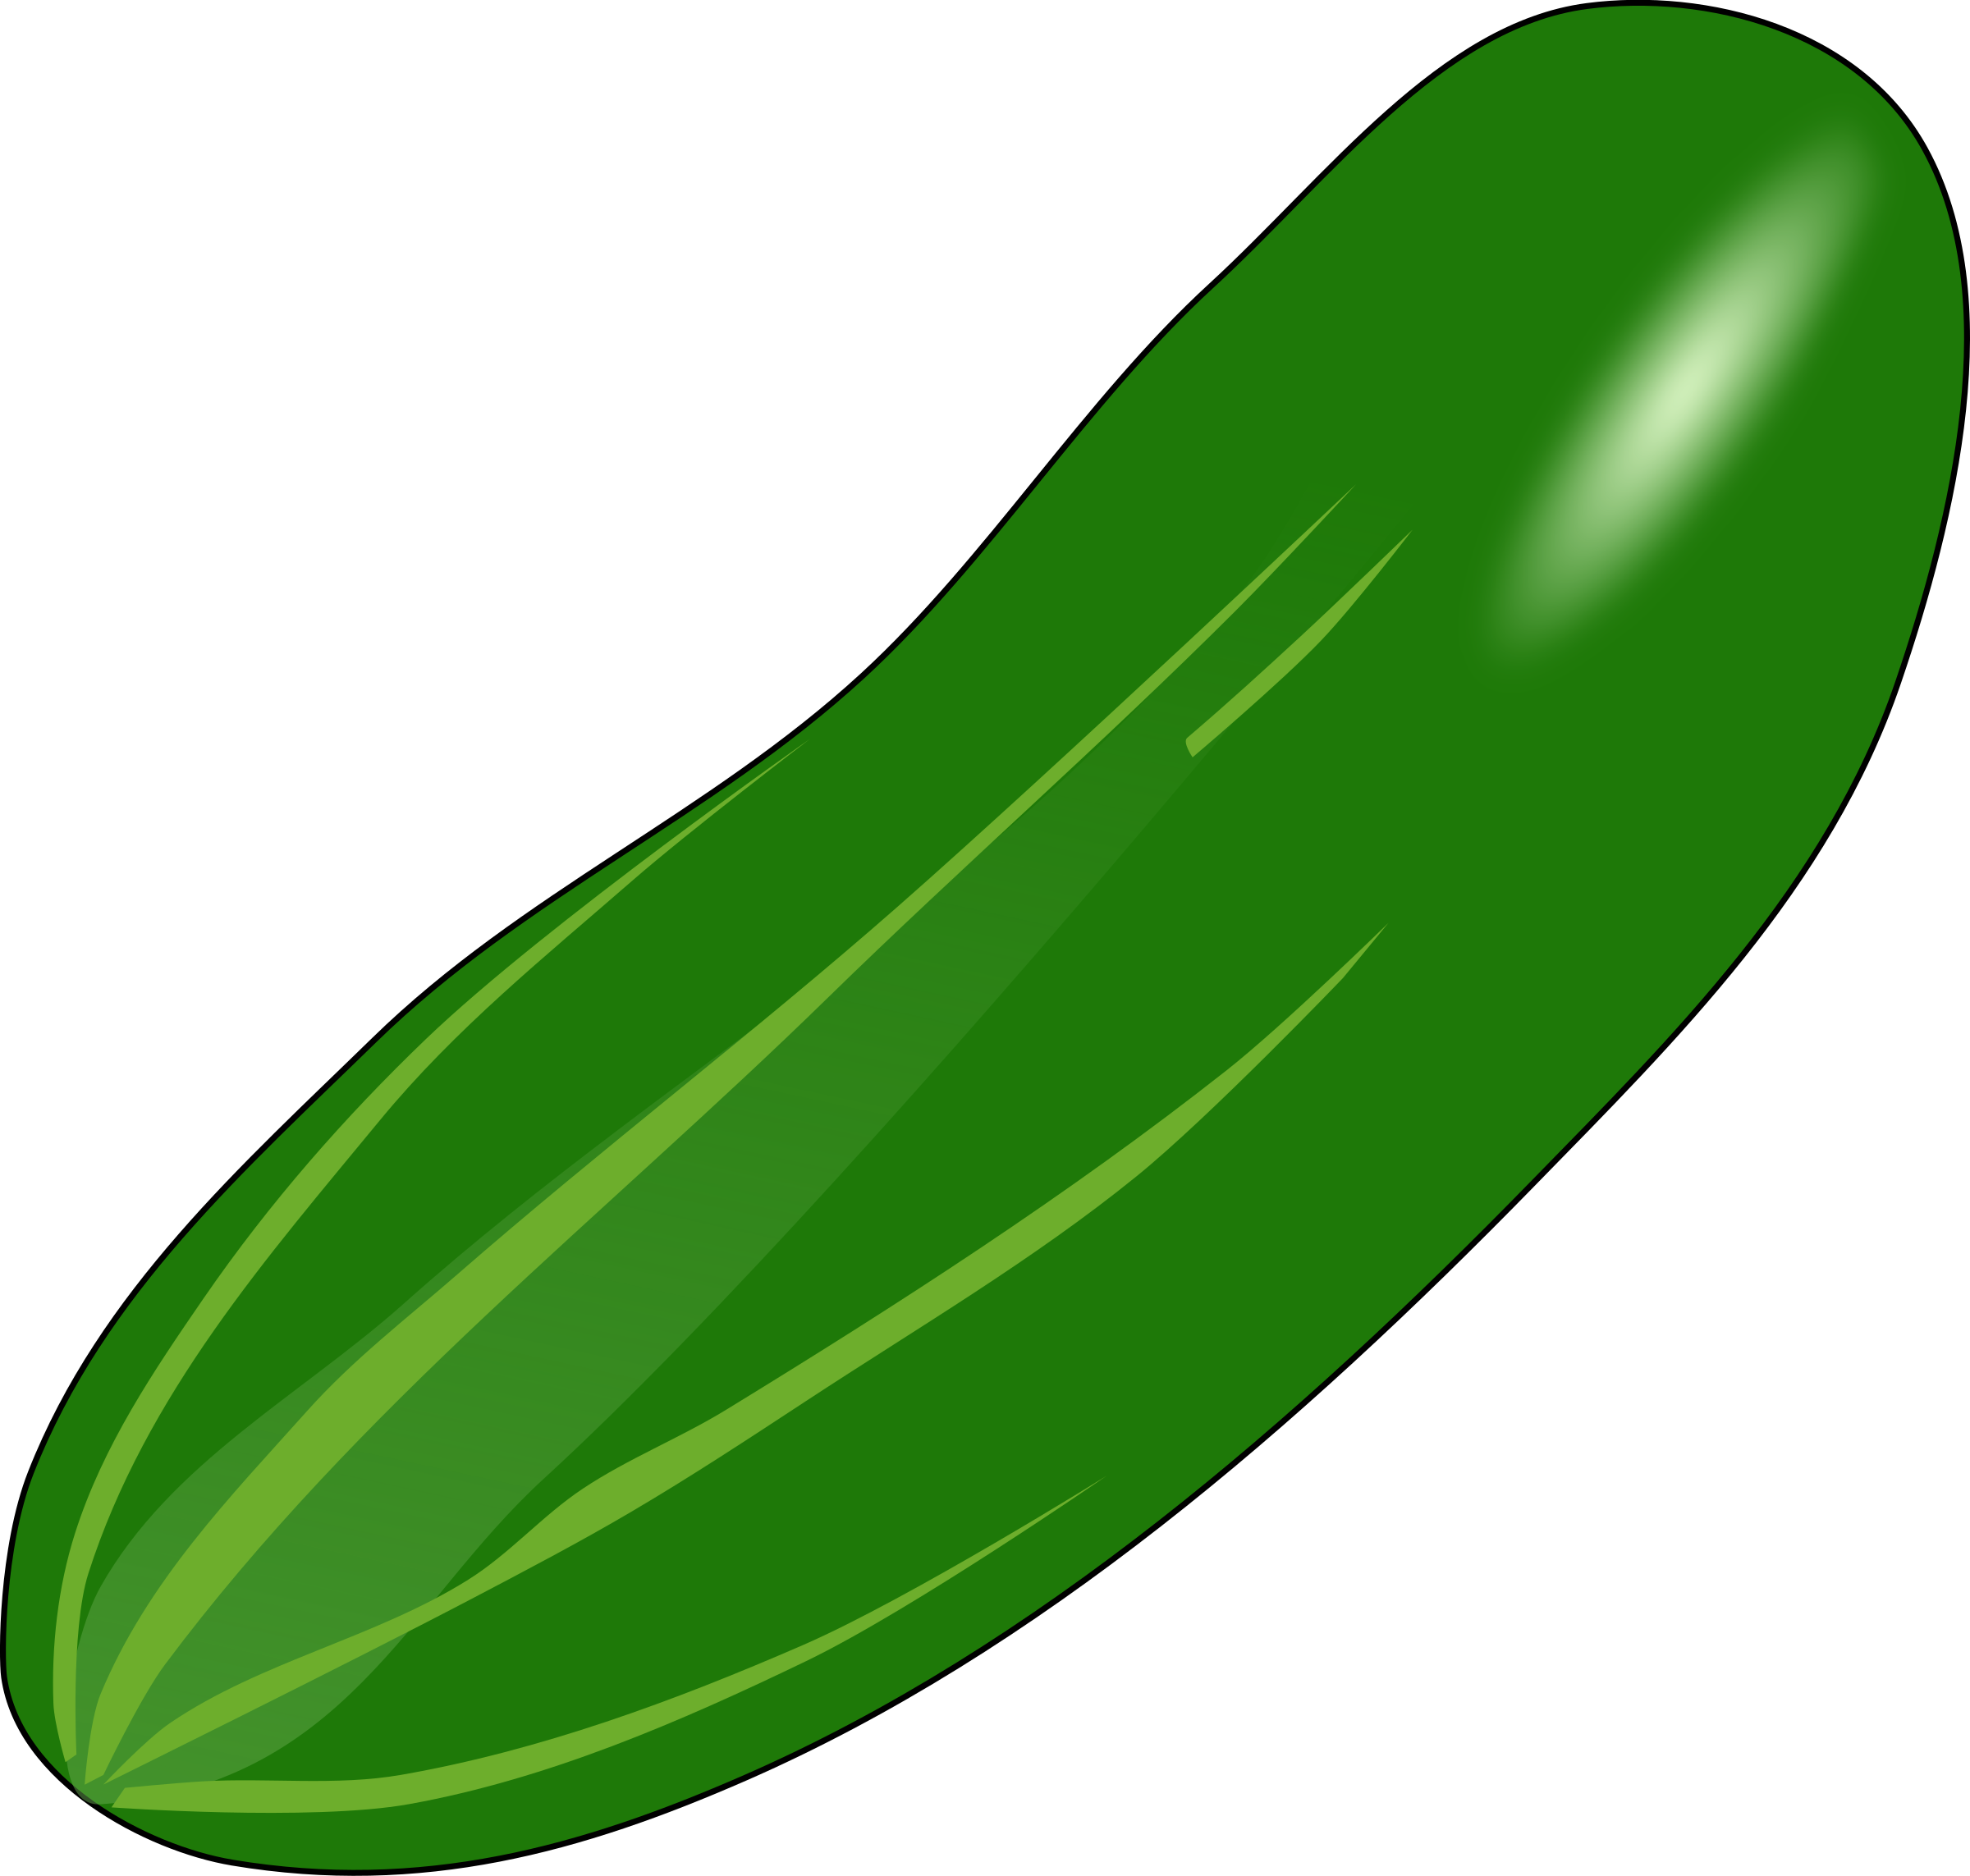 Cucumber clipart cucumberclipart vegetable clip art 2 image